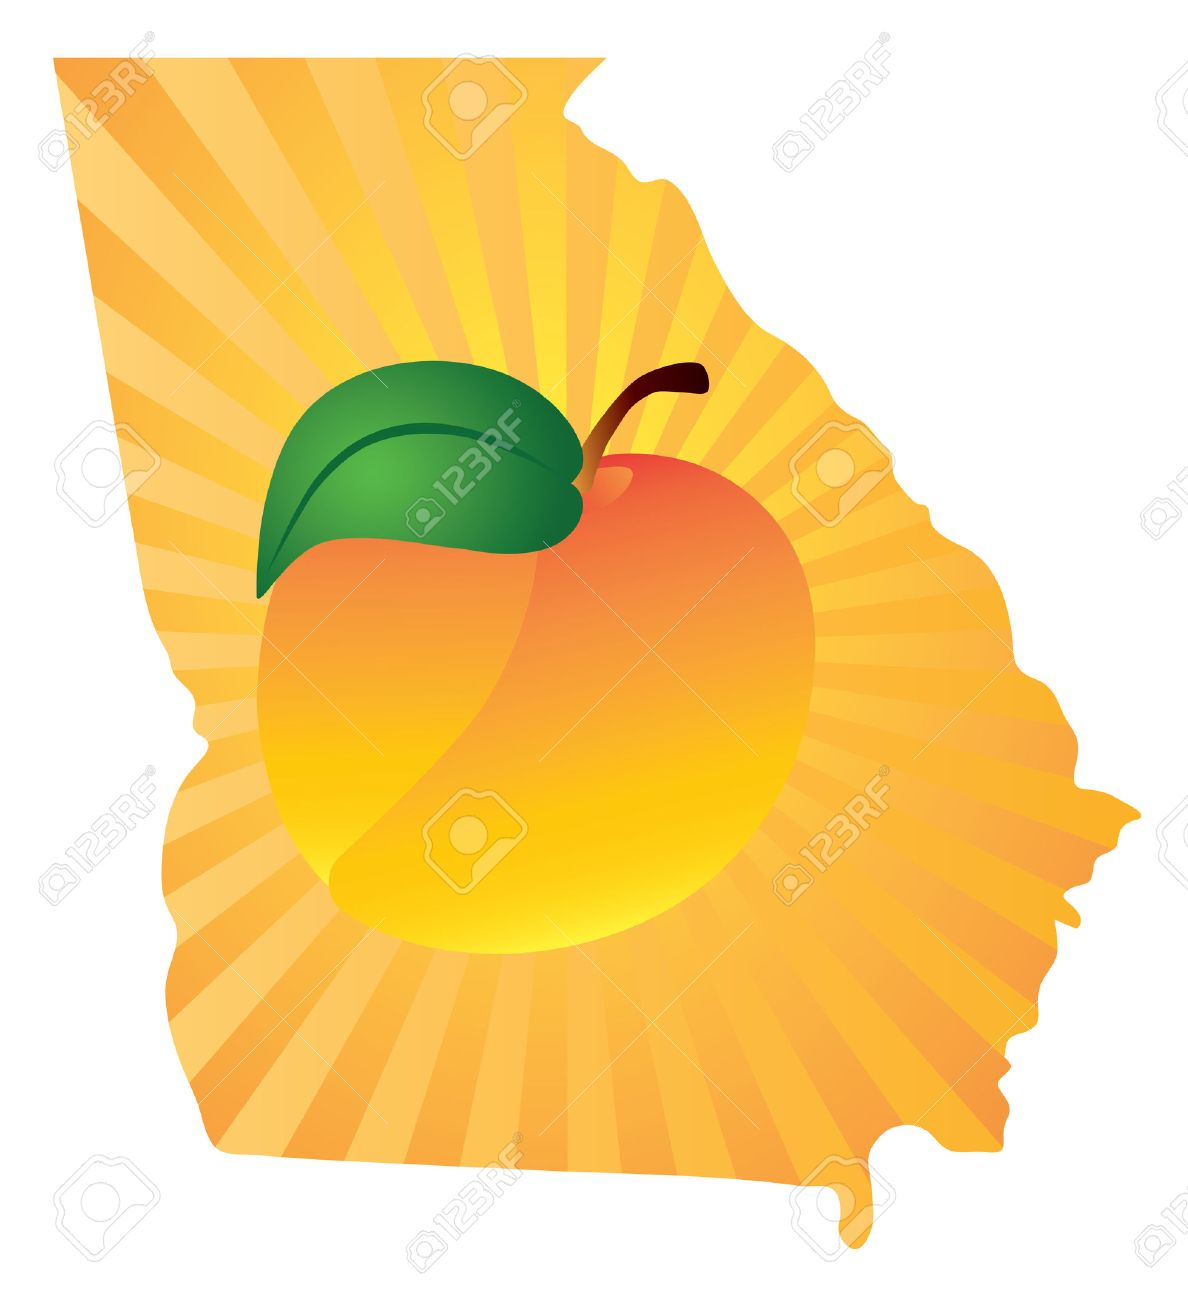 Georgia State With Official Symbol Peach Fruit In Map Silhouette - Ga map vector